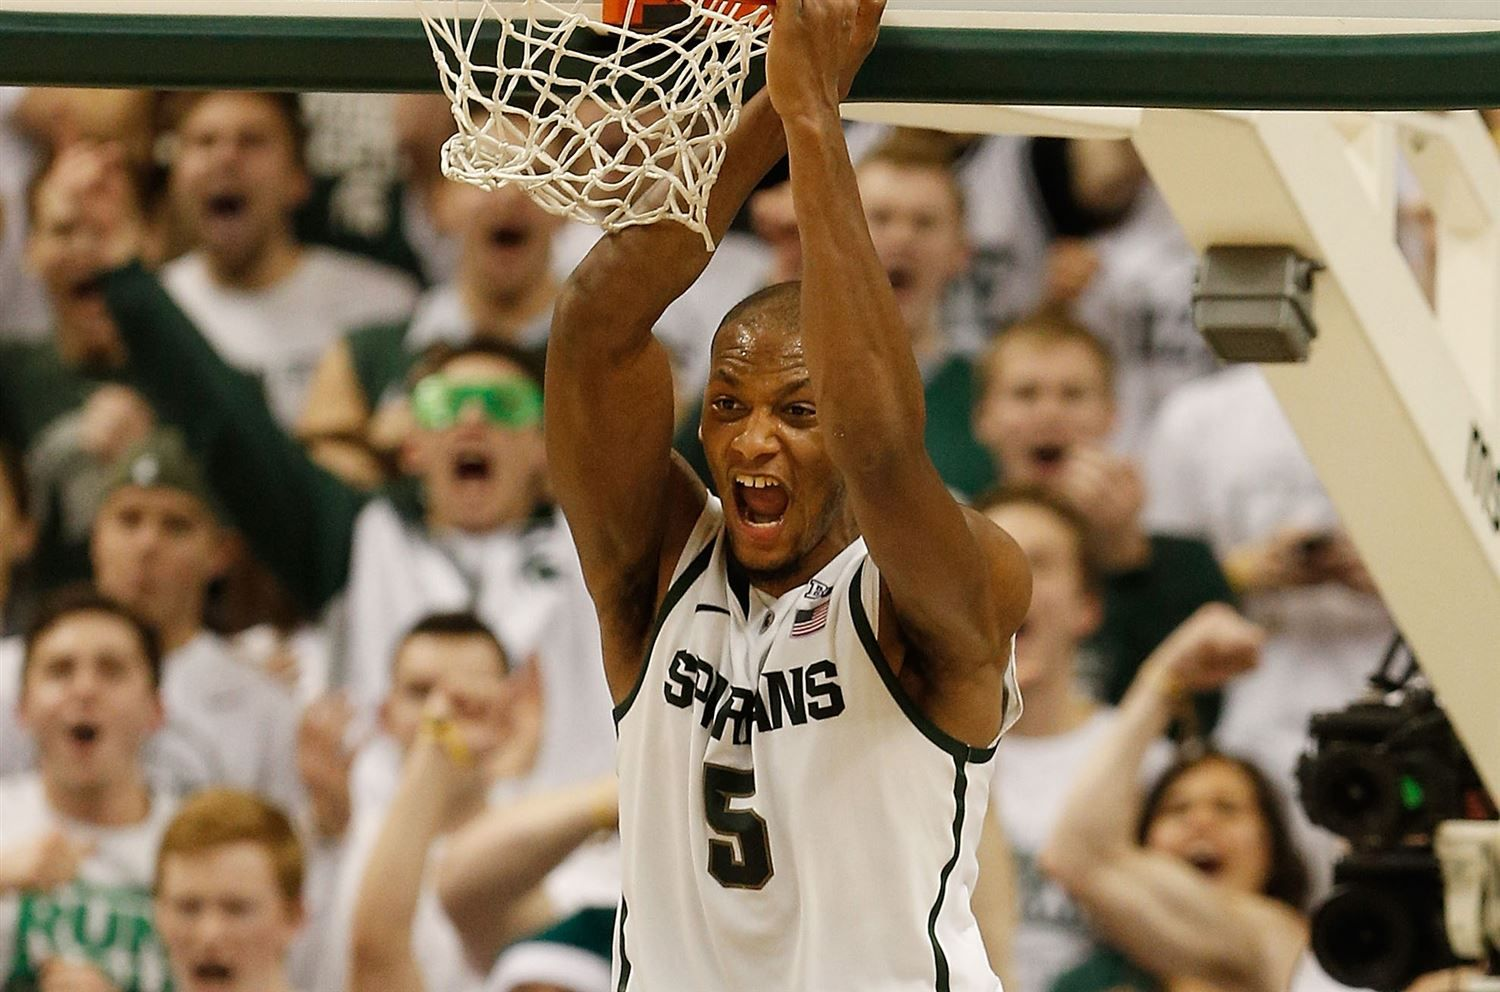 # 3 Michigan State vs. # 21 Michigan: Sat, Jan 25 7:00 PM EST - Click the GettyImages picture to access the movoli game wall